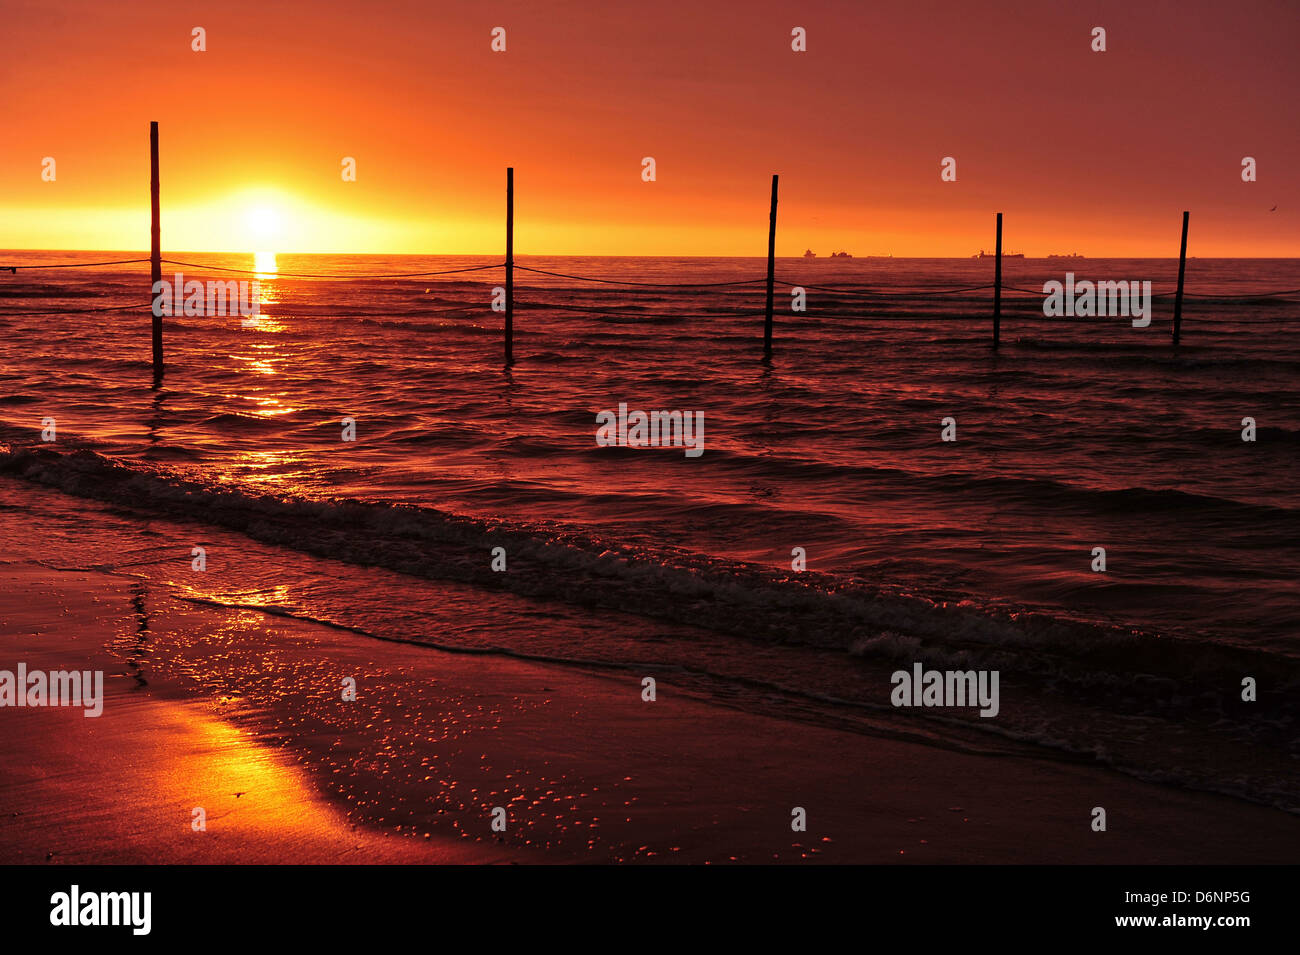 Wangerooge, Germany, View of the sunset from the beach Stock Photo